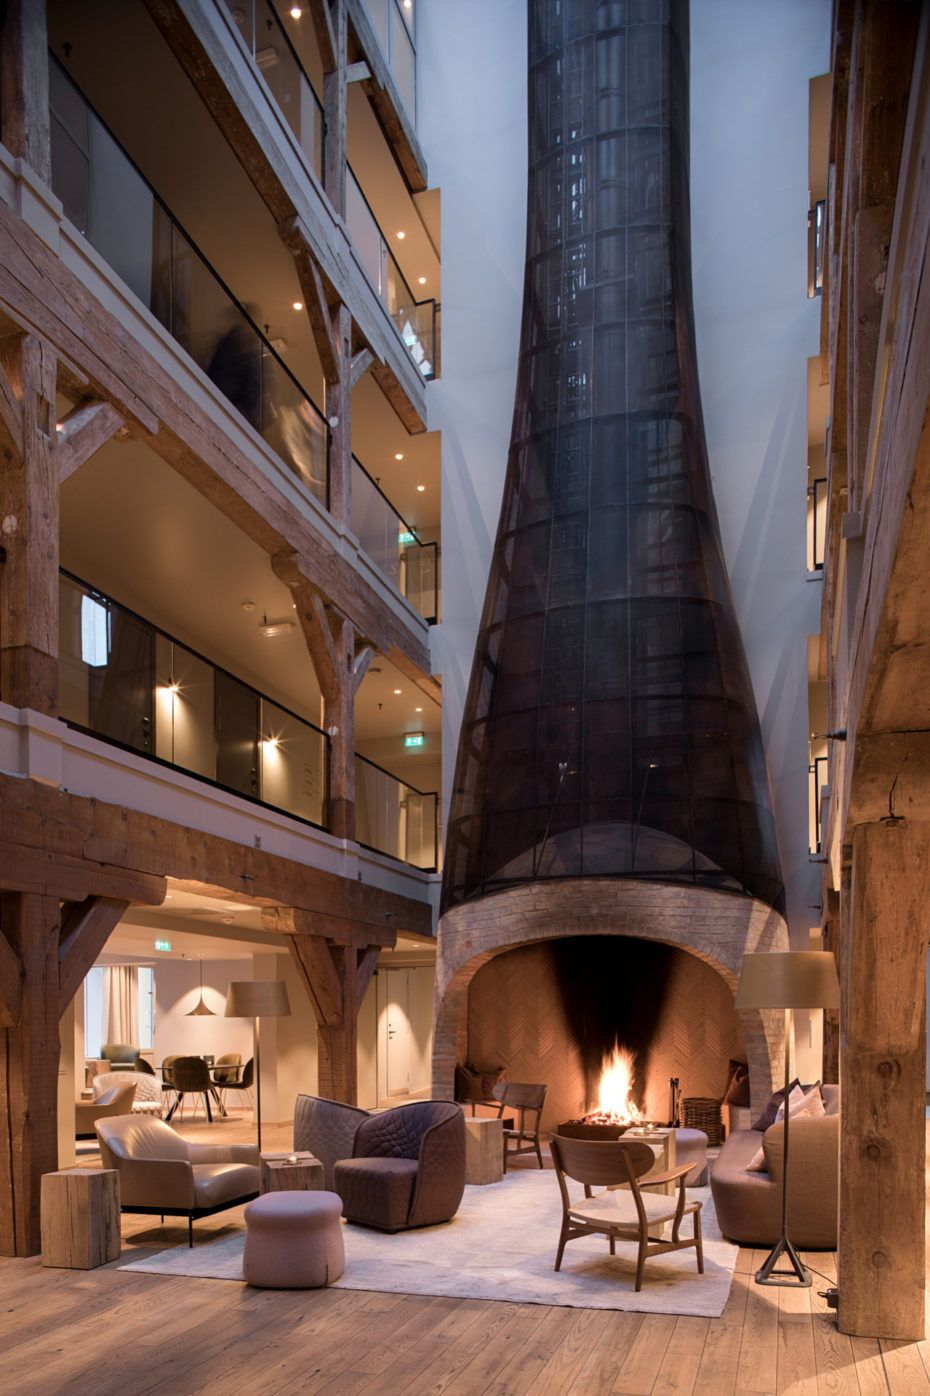 13 Things I Found On The Internet Today Vol Cclxxvi In 2020 Hotel Lobby Design Scandinavian Hotel Hotel Lobby